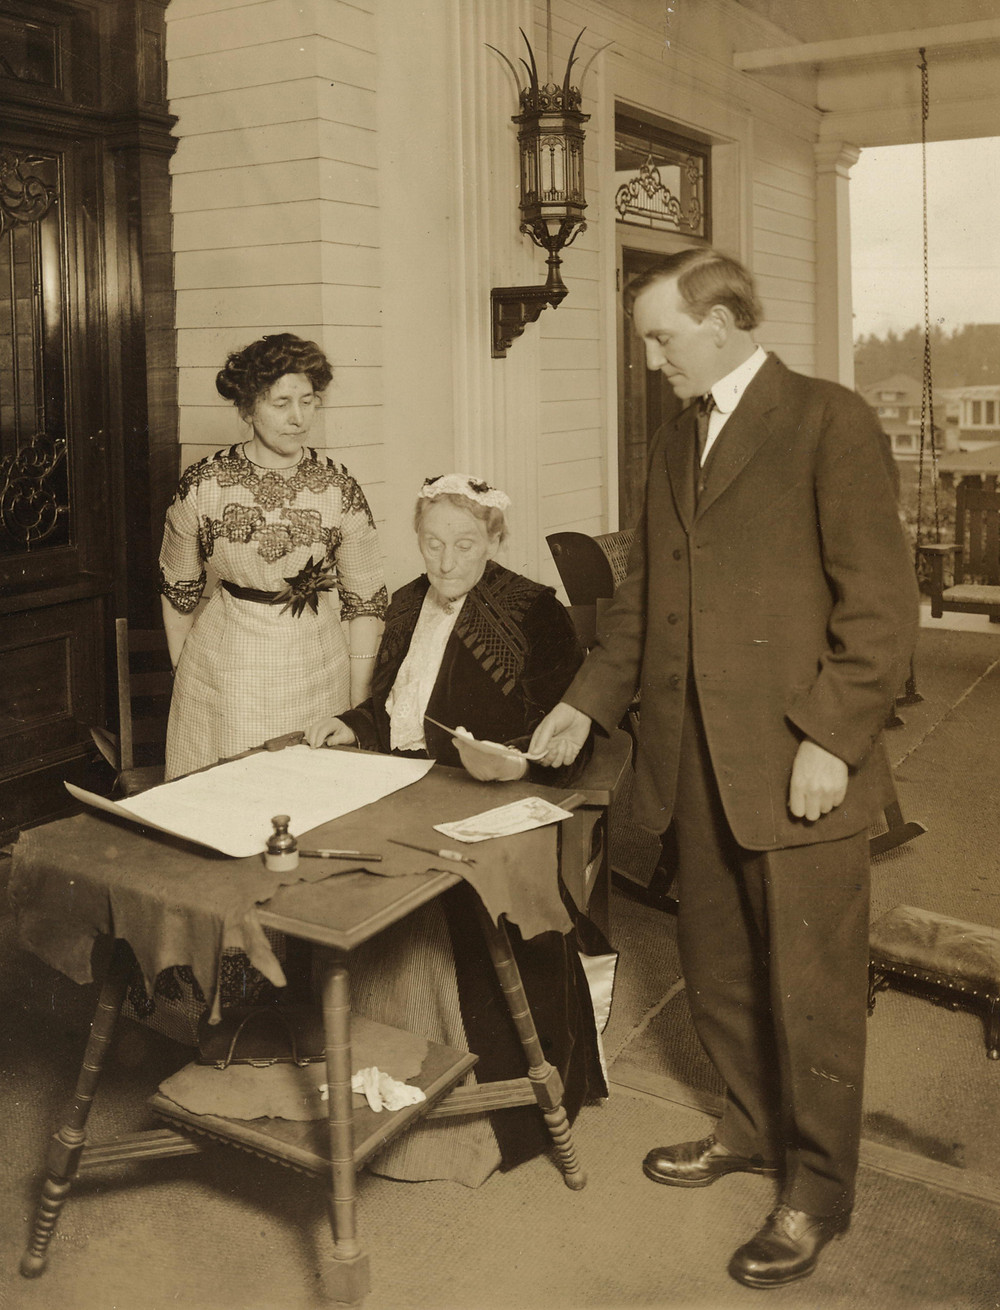 Abigail Scott Duniway signing first Equal Suffrage Proclamation ever made by a woman. Governor Oswald West, who had signed the Proclamation is shown looking on, and acting President Dr. Viola M. Coe is standing near.